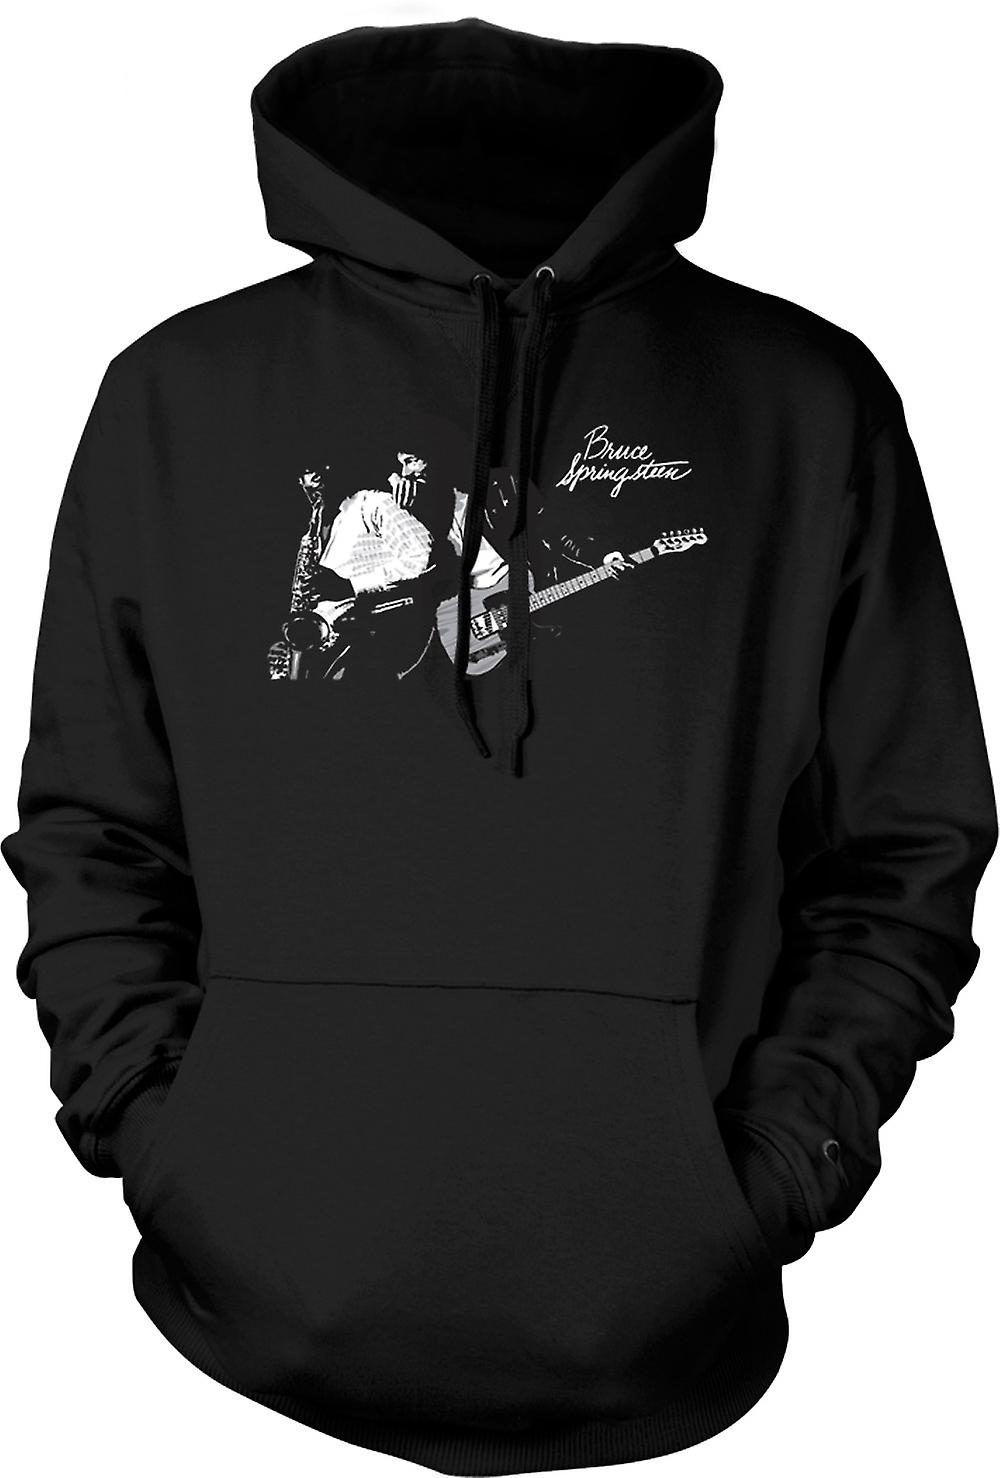 Mens Hoodie - Bruce Springsteen Born To Run